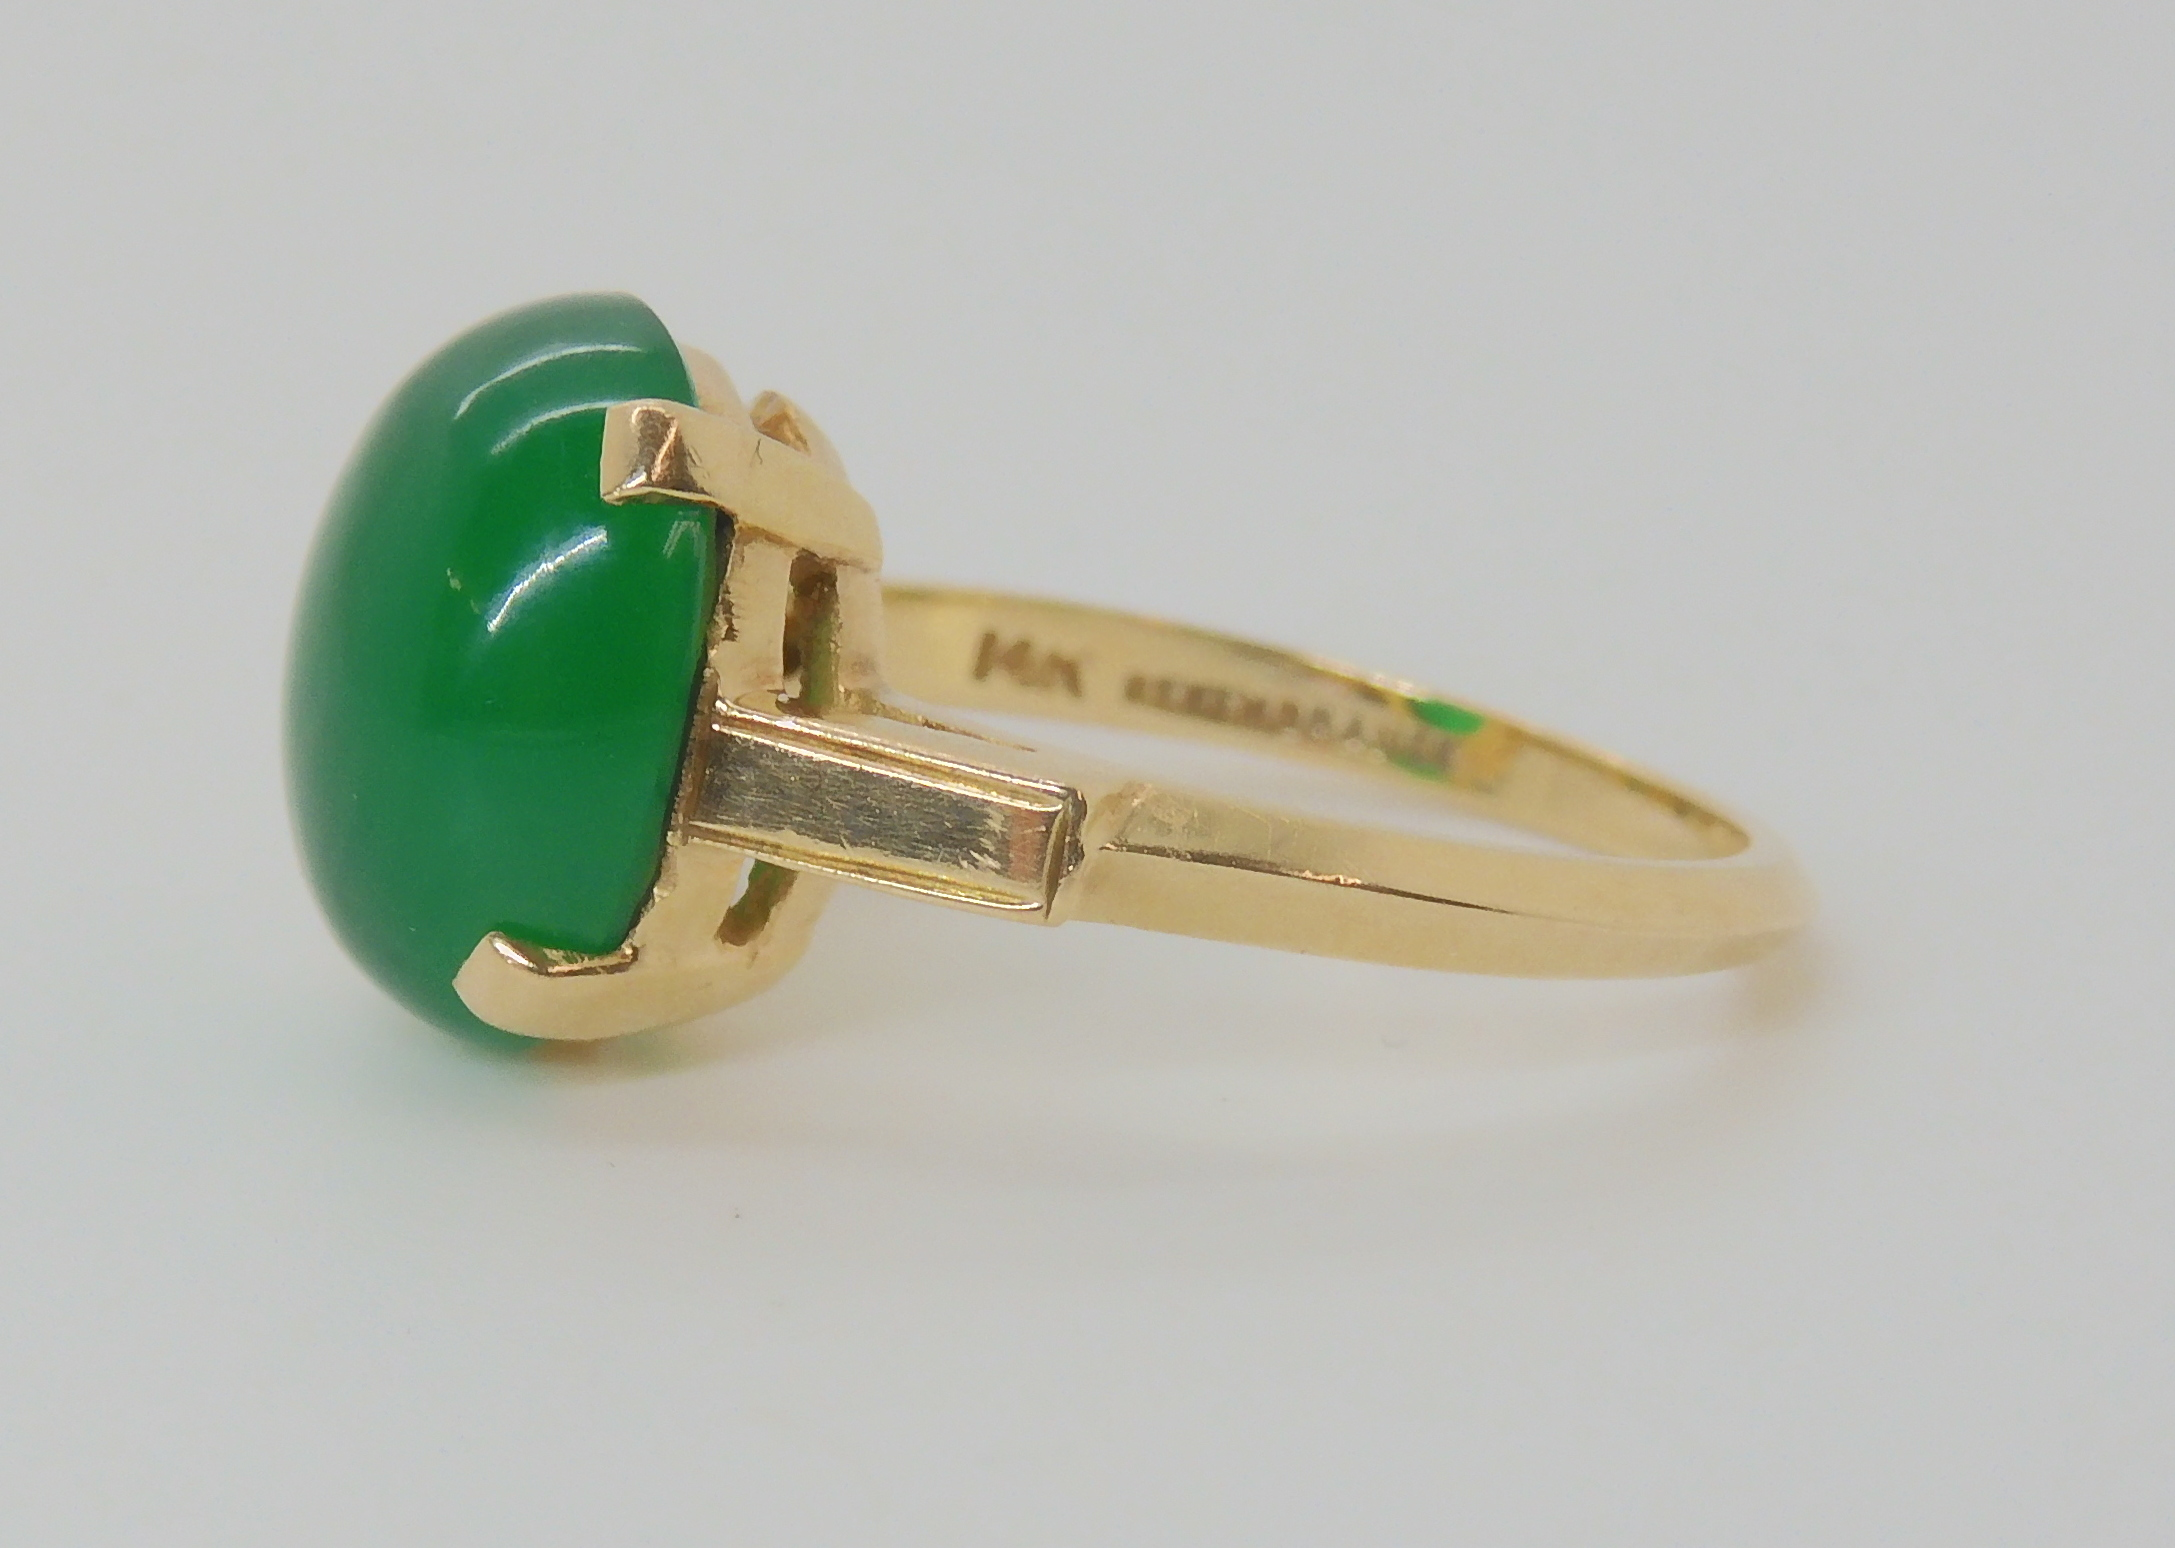 A 14K GREEN HARDSTONE SET RING Finger size M, weight 3.6gms Condition Report: Available upon - Image 3 of 3